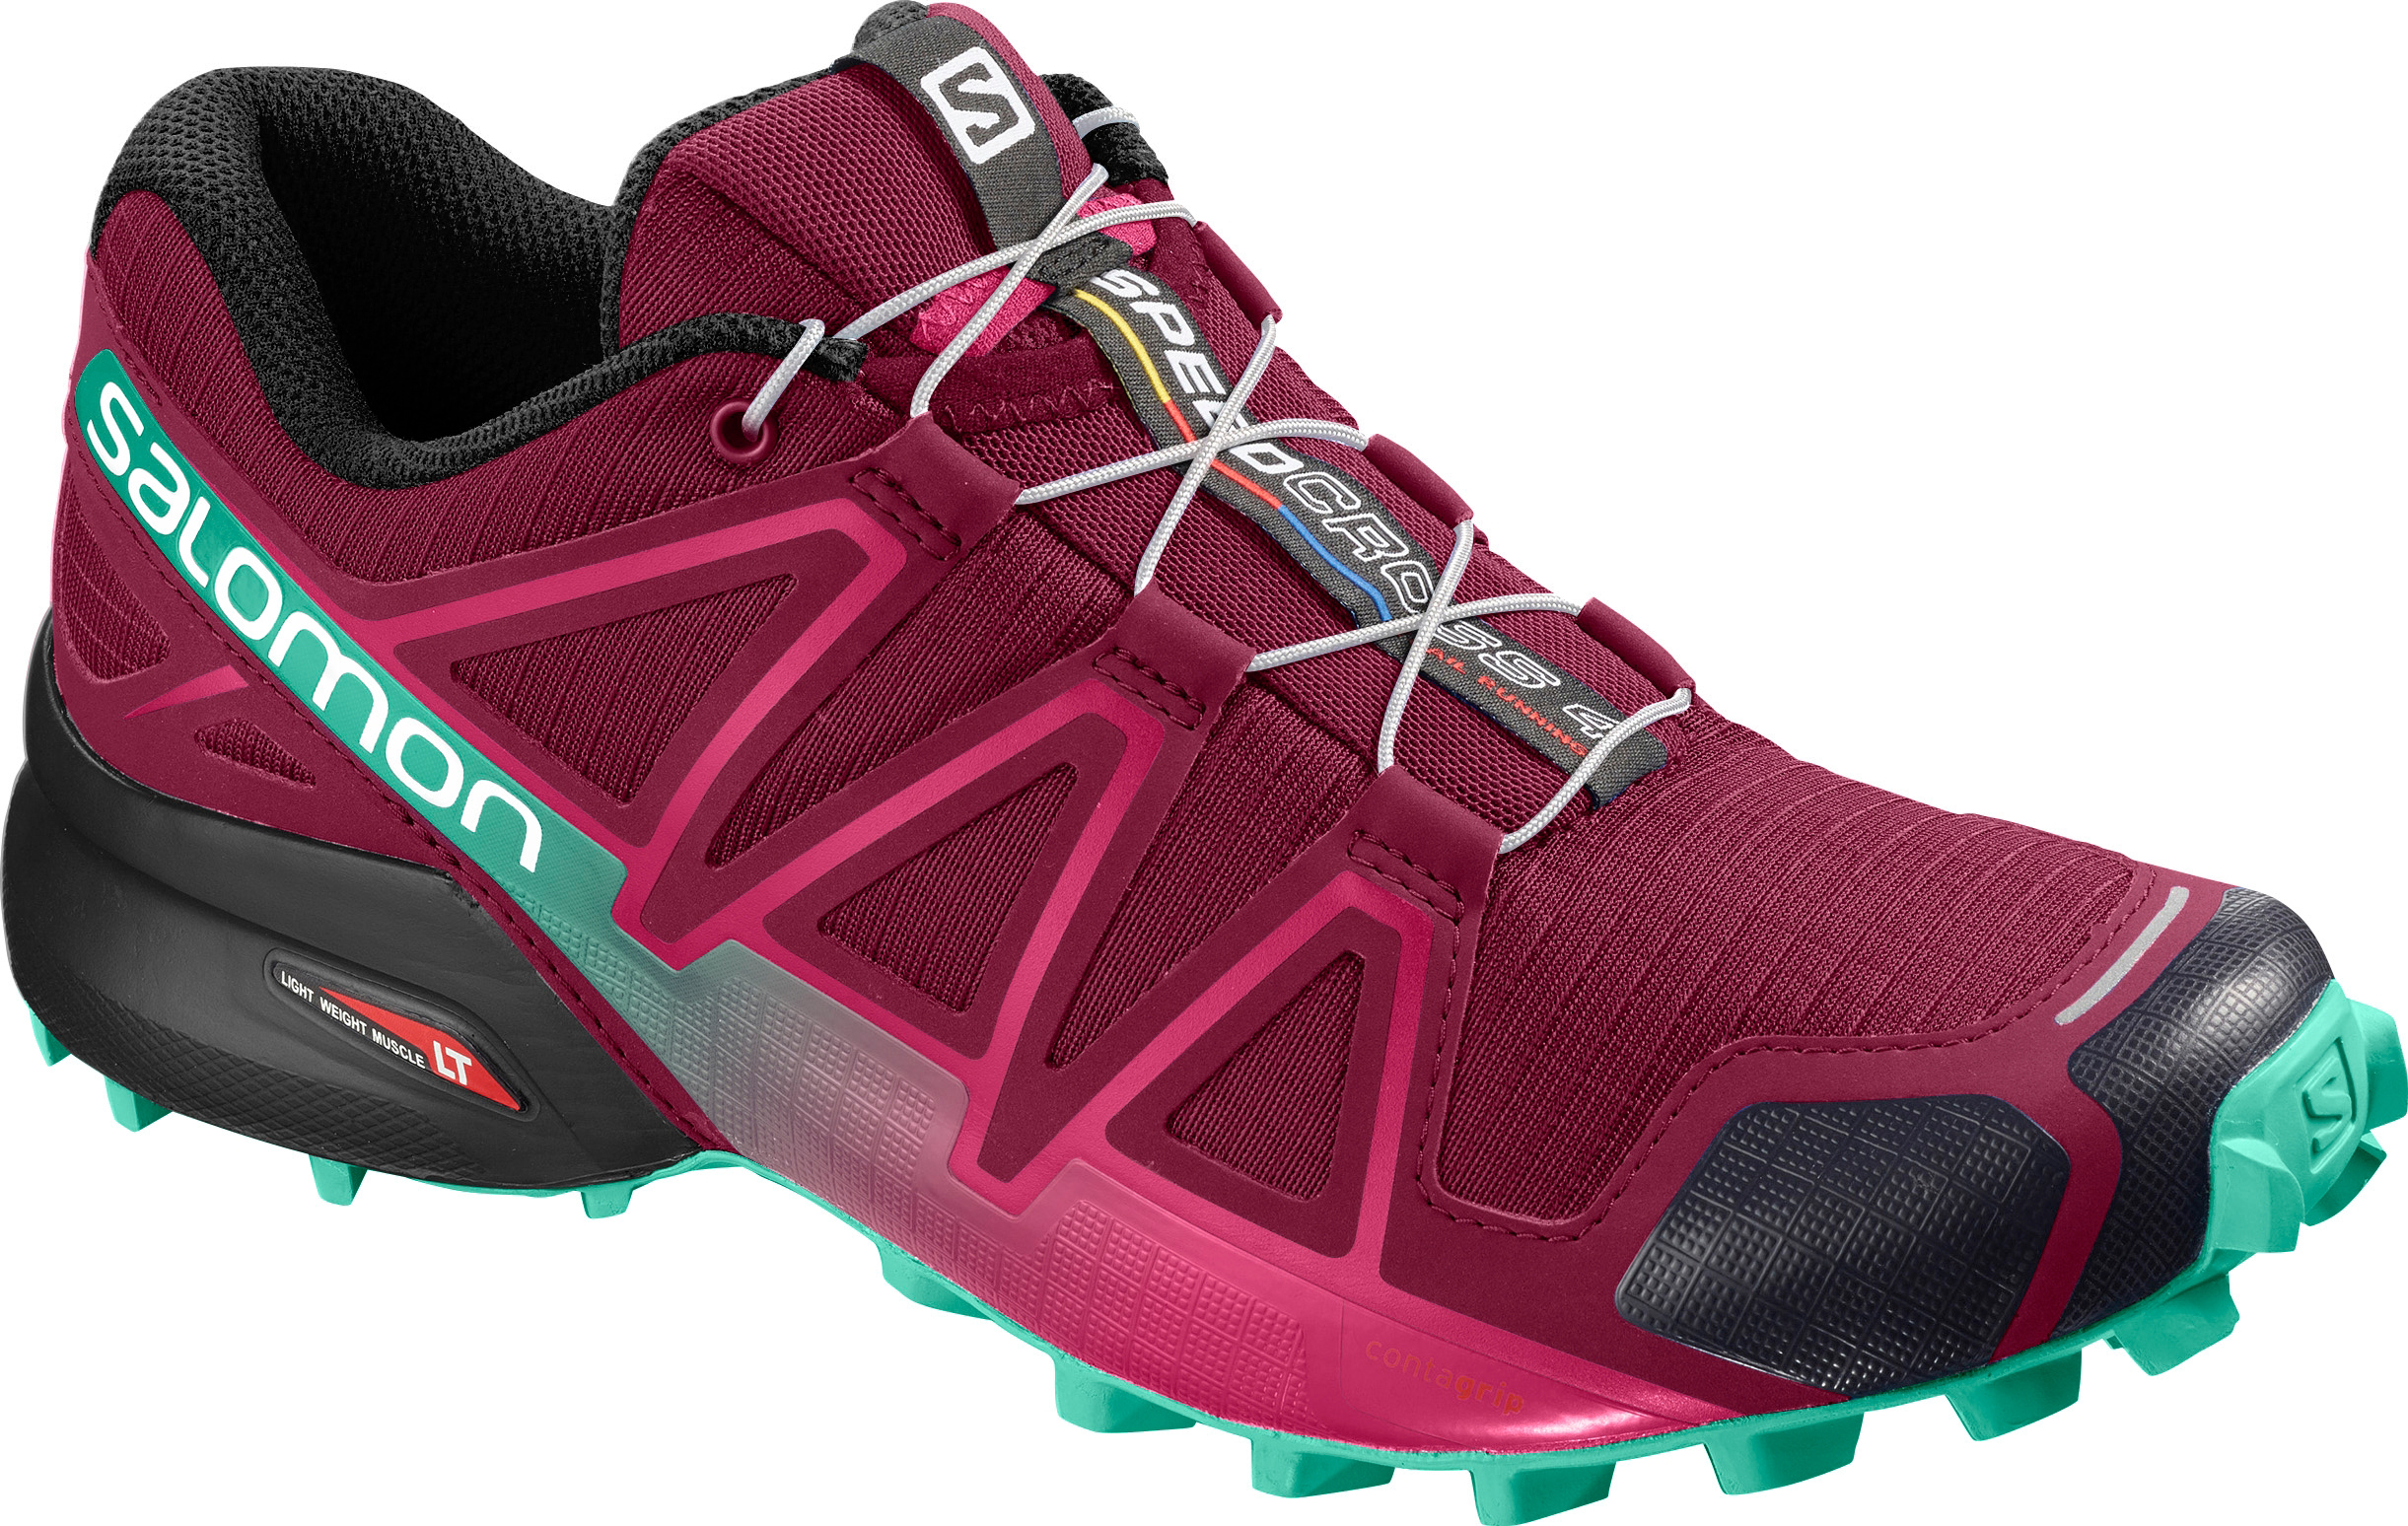 5b4f5bf38ef7 Salomon Shoes